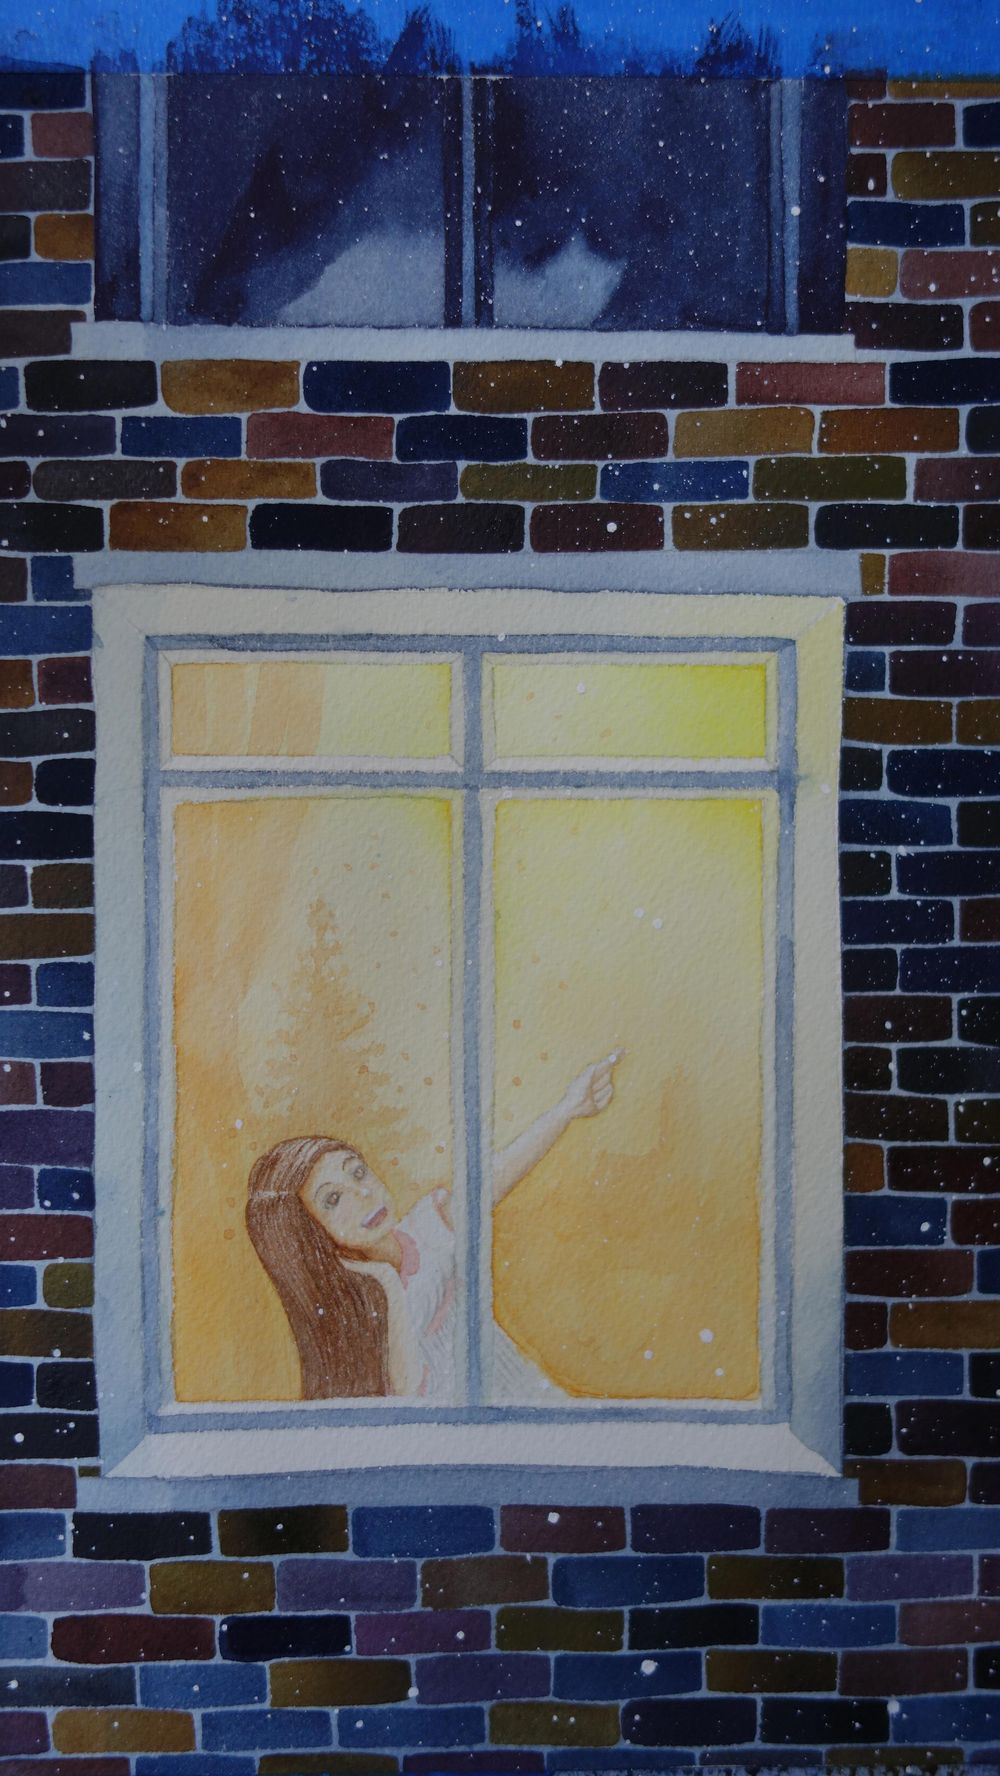 Window - image 4 - student project